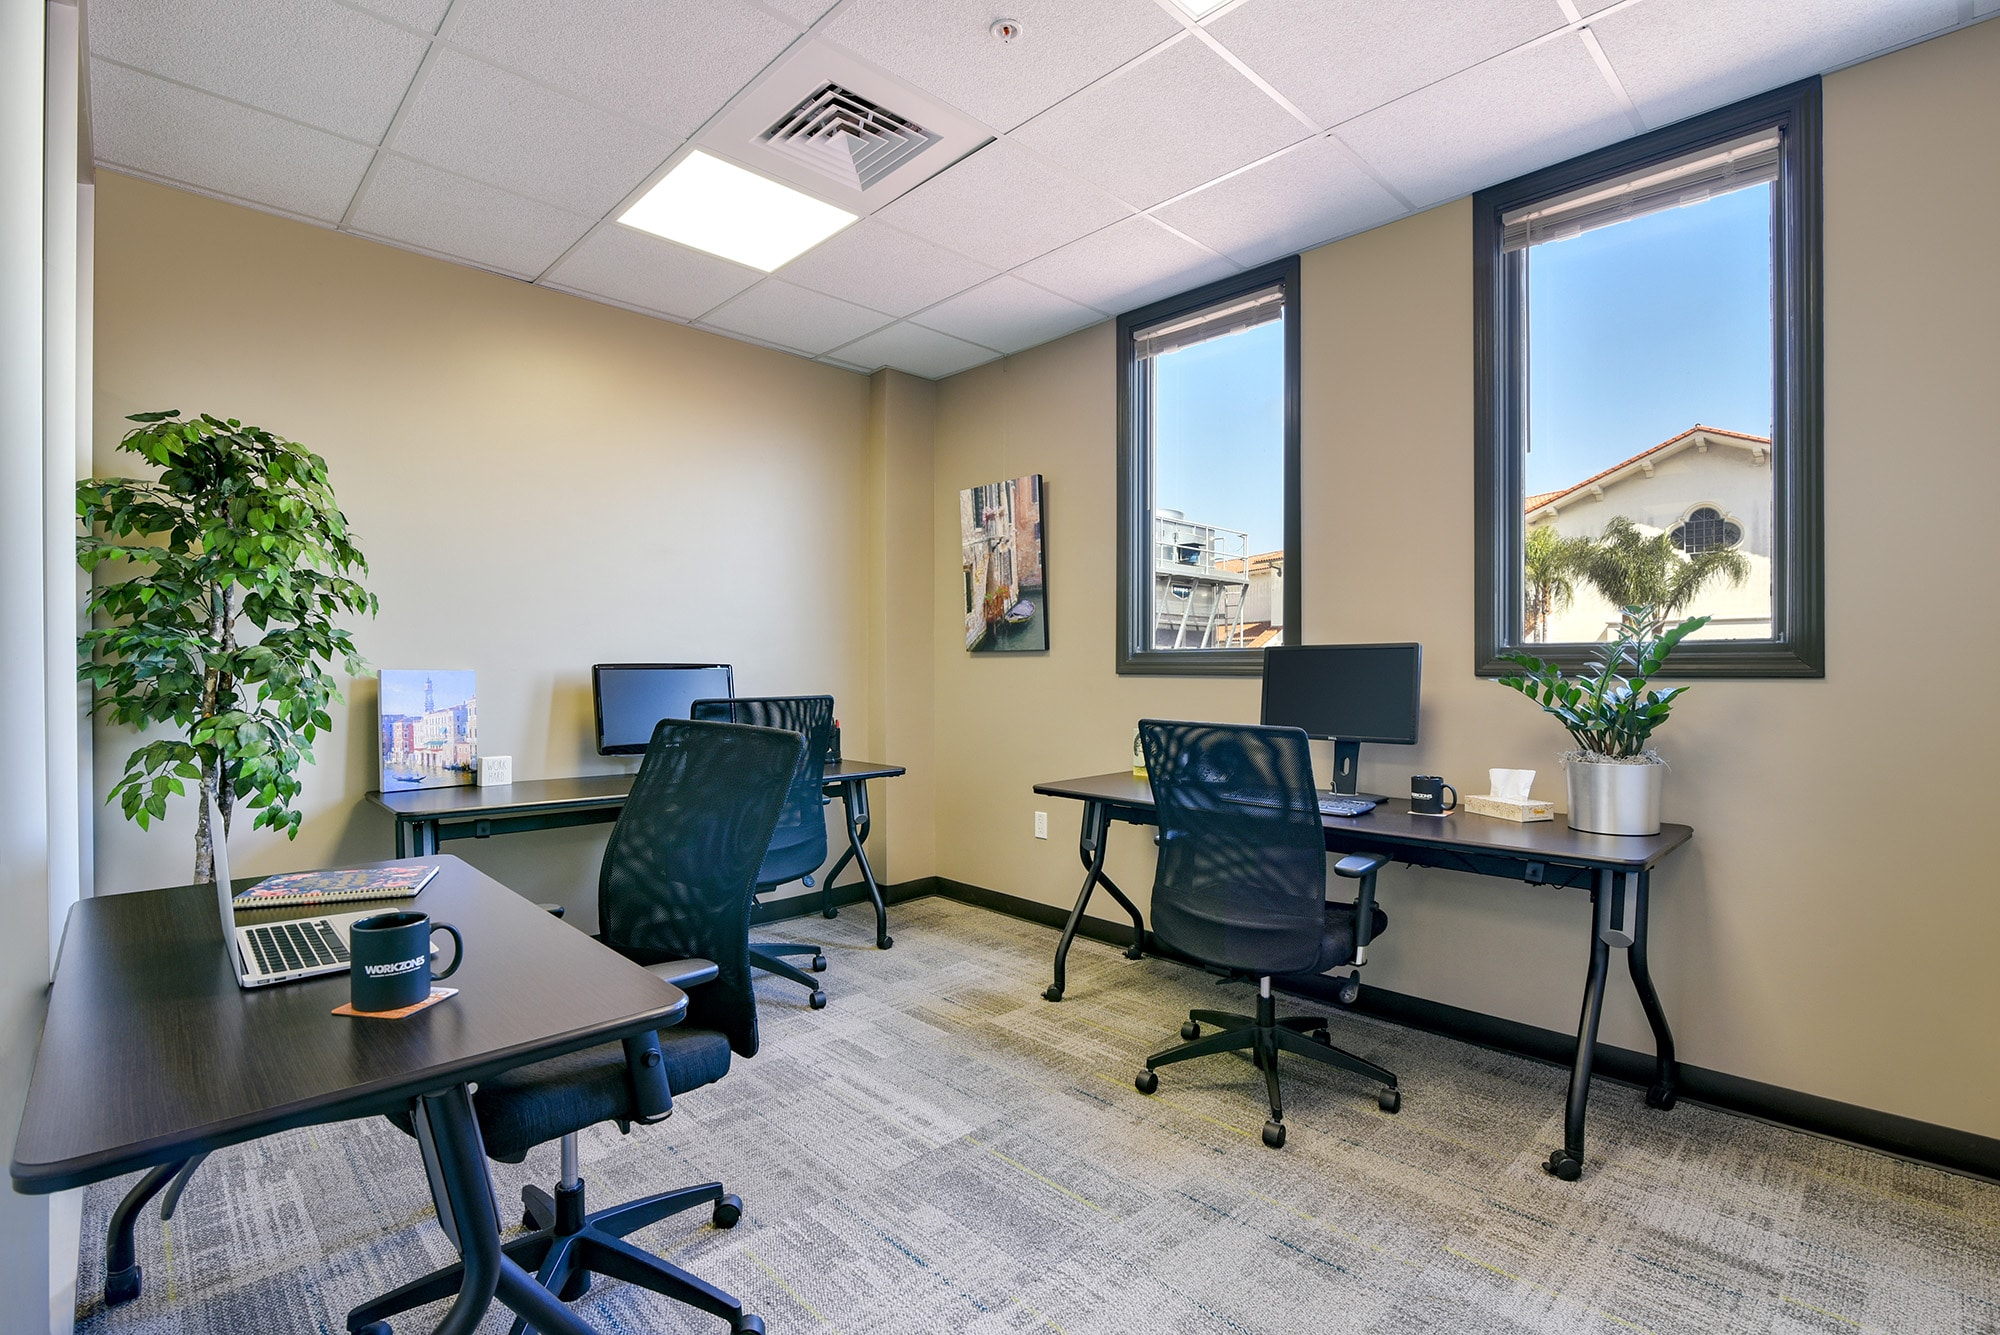 Gold Office at Workzones